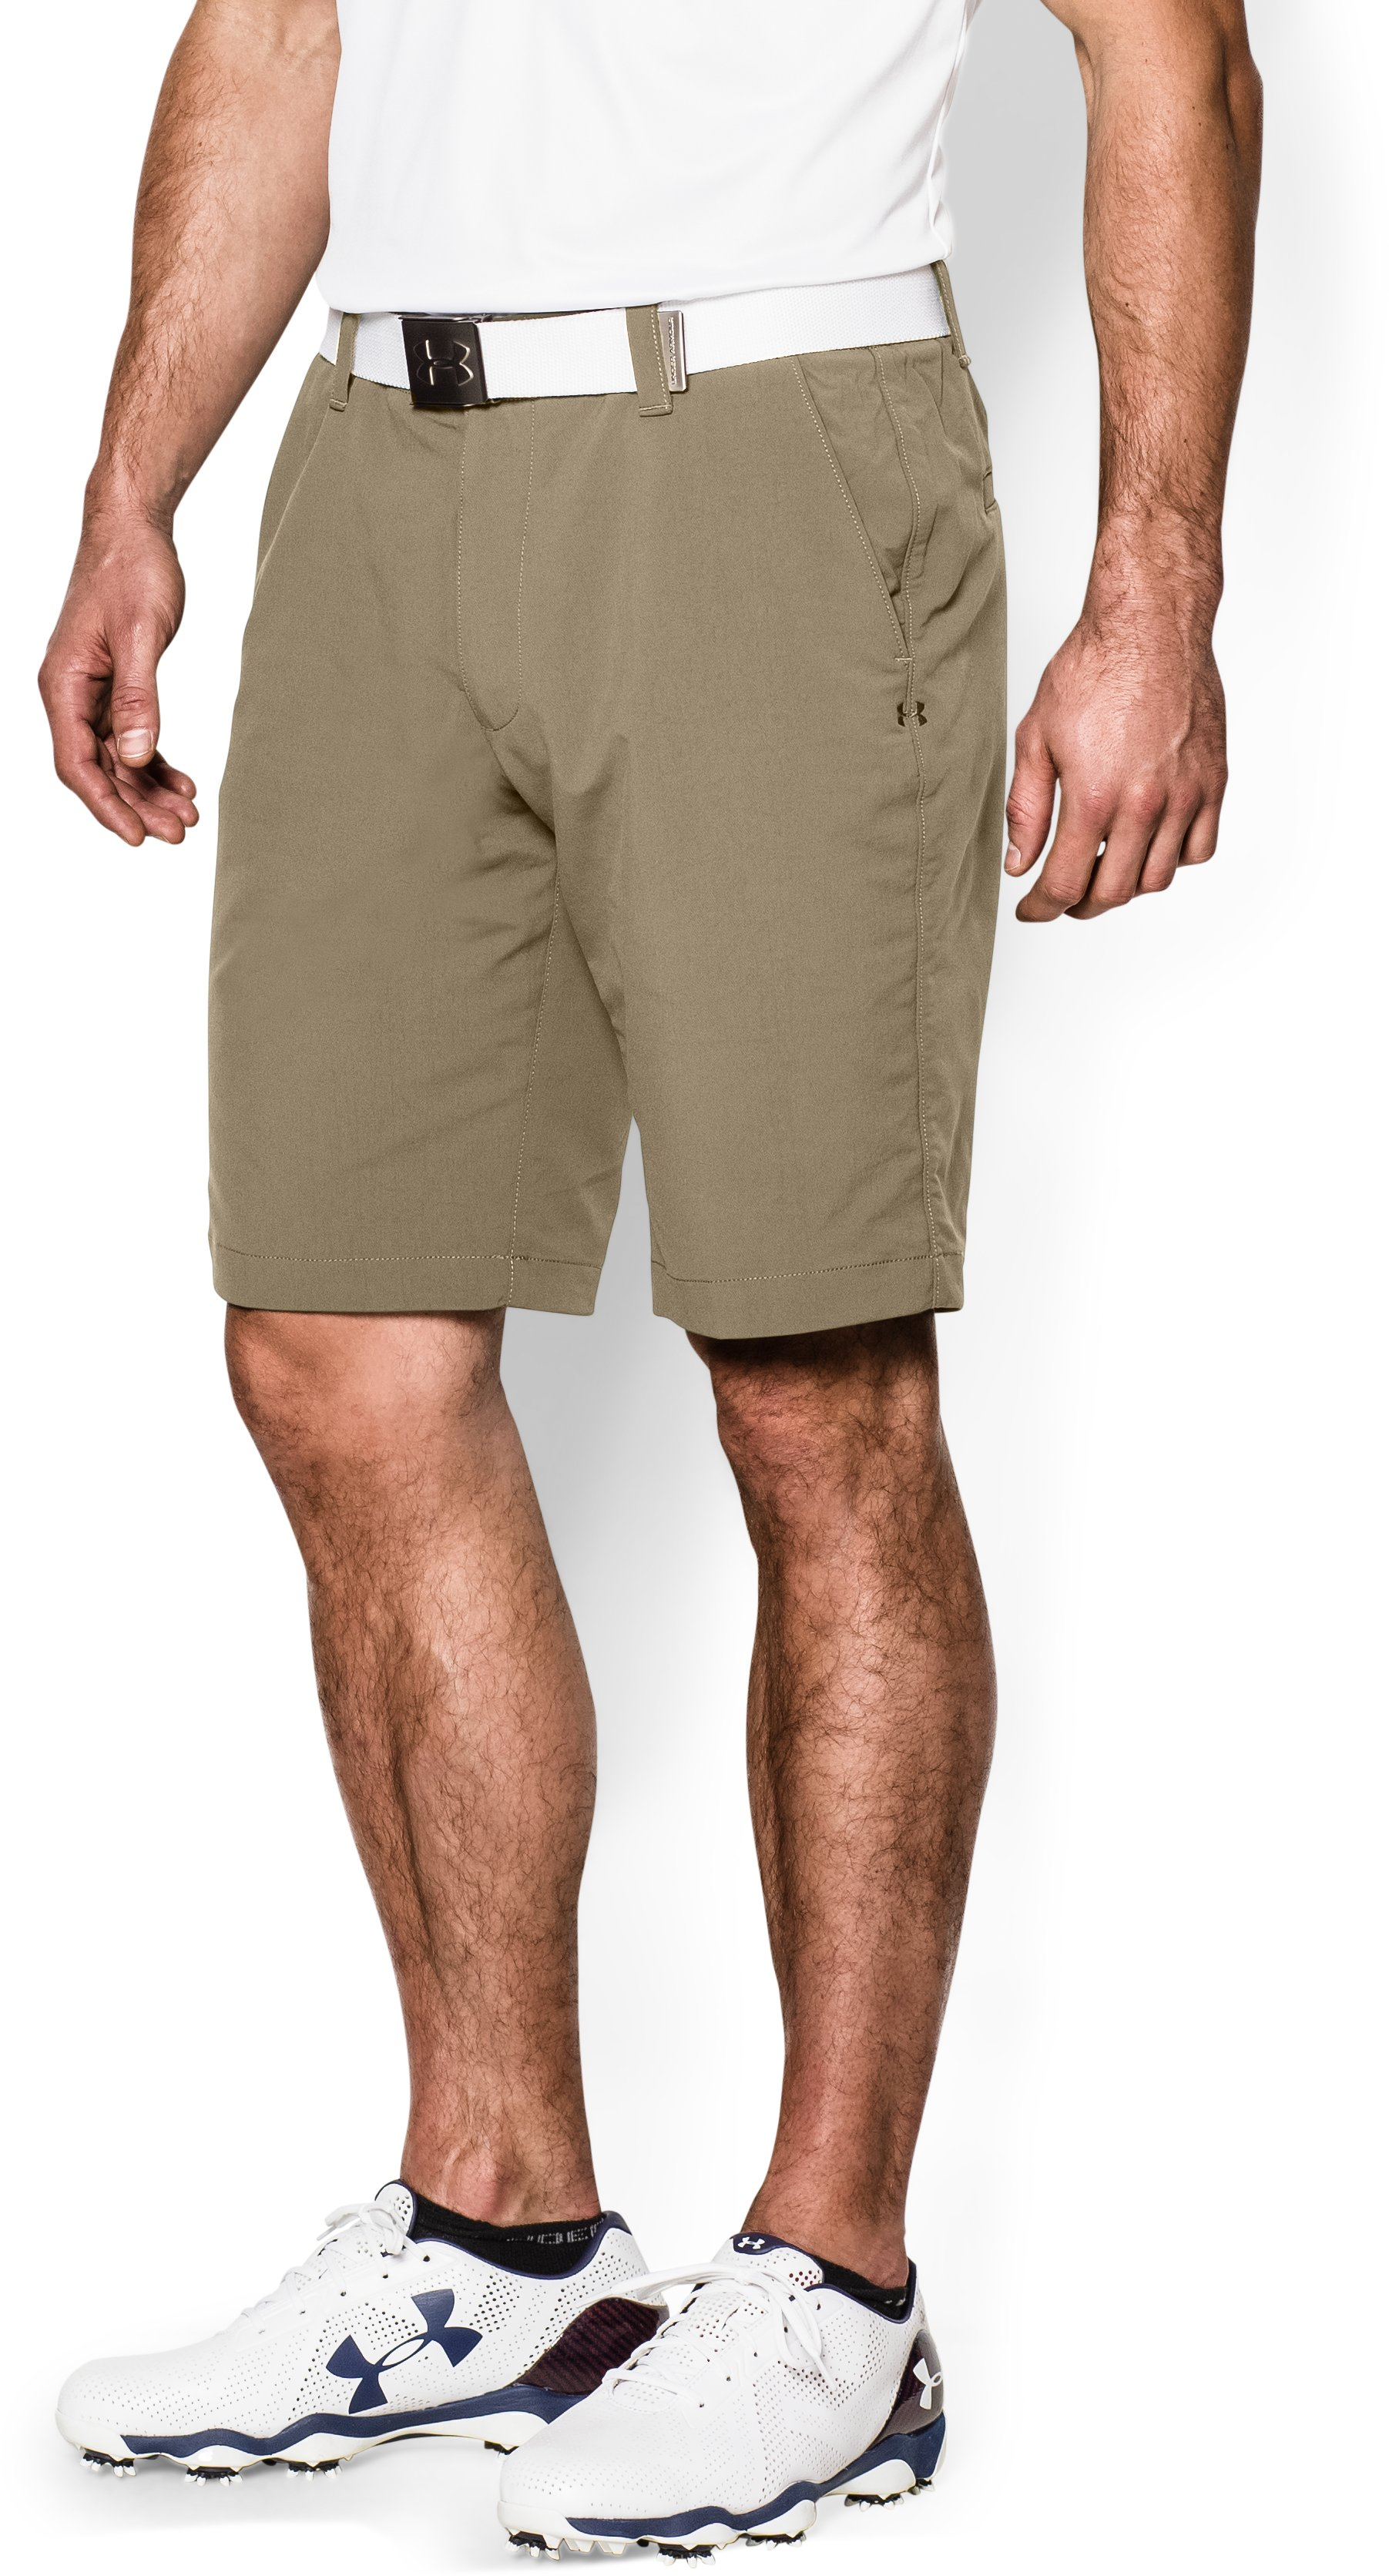 canvas shorts Men's UA Match Play Shorts Look feel nice...Great shorts!...Very pleased!